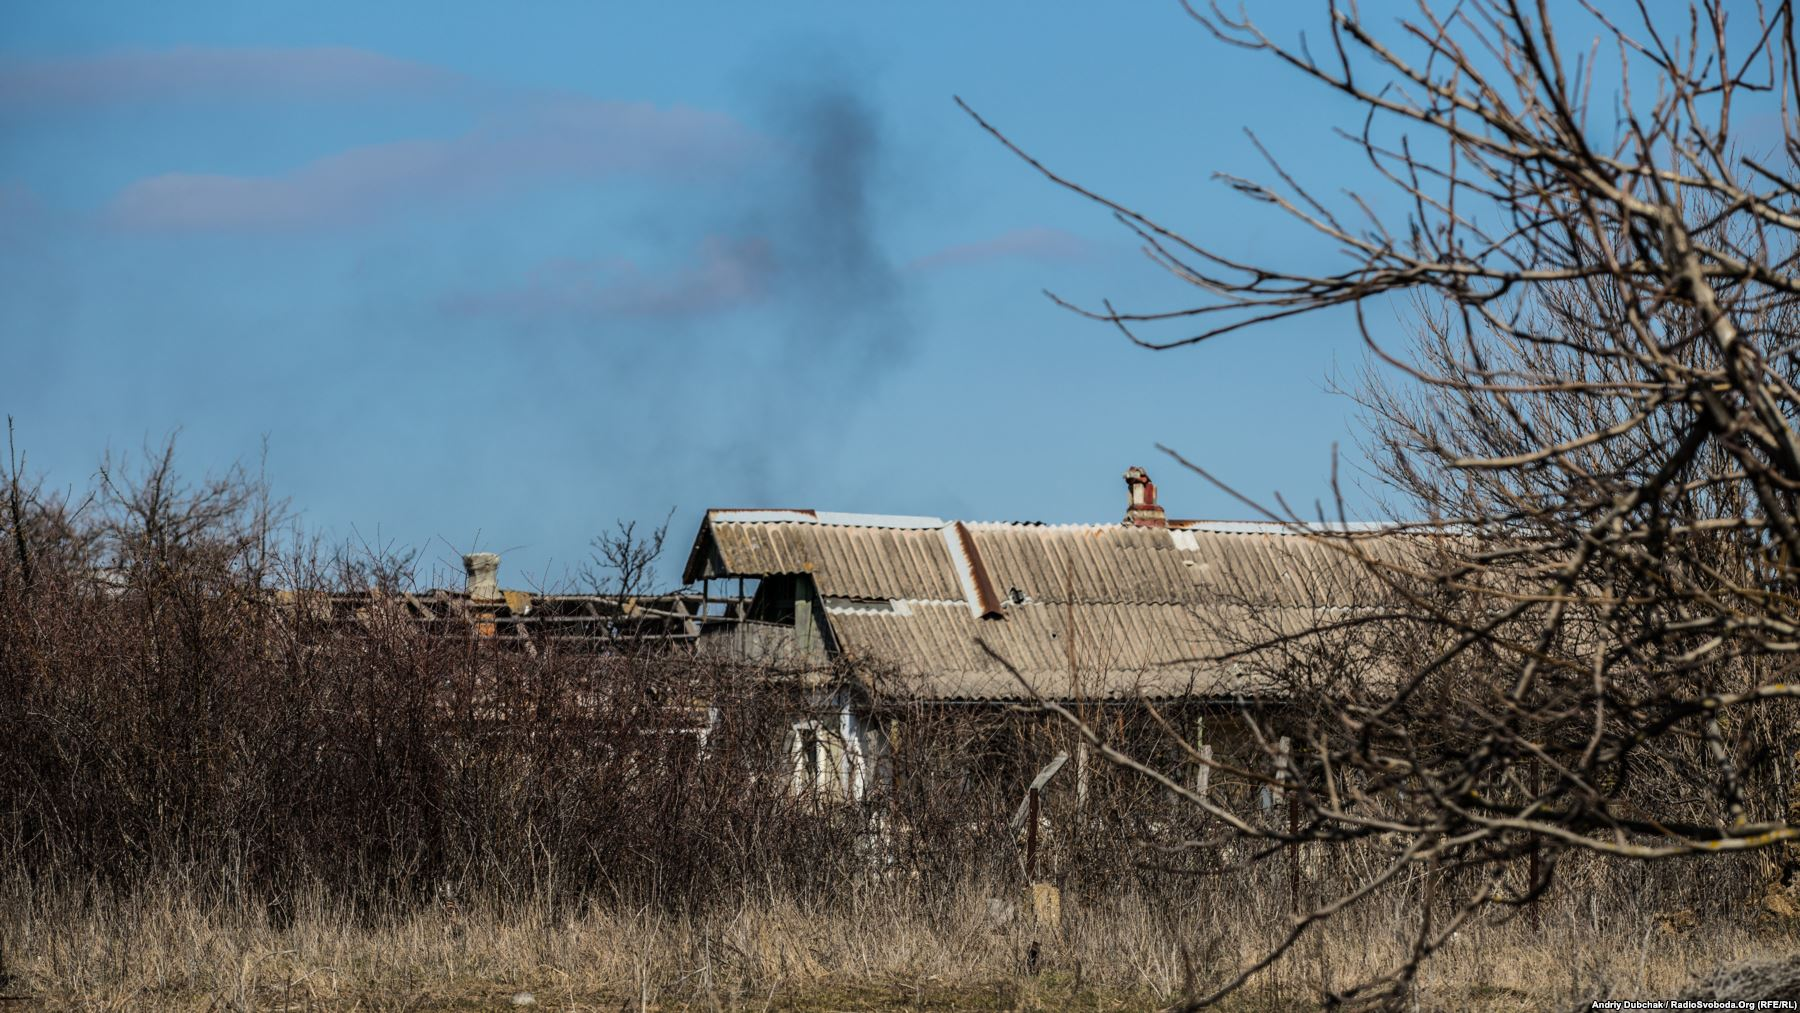 As RFE/RL photojournalist Andriy Dubchak walked through Vodyane on March 26, a series of explosions, followed by an intense burst of shooting broke out on the outskirts of the village. As Dubchak watched, this column of smoke drifted into the sky.